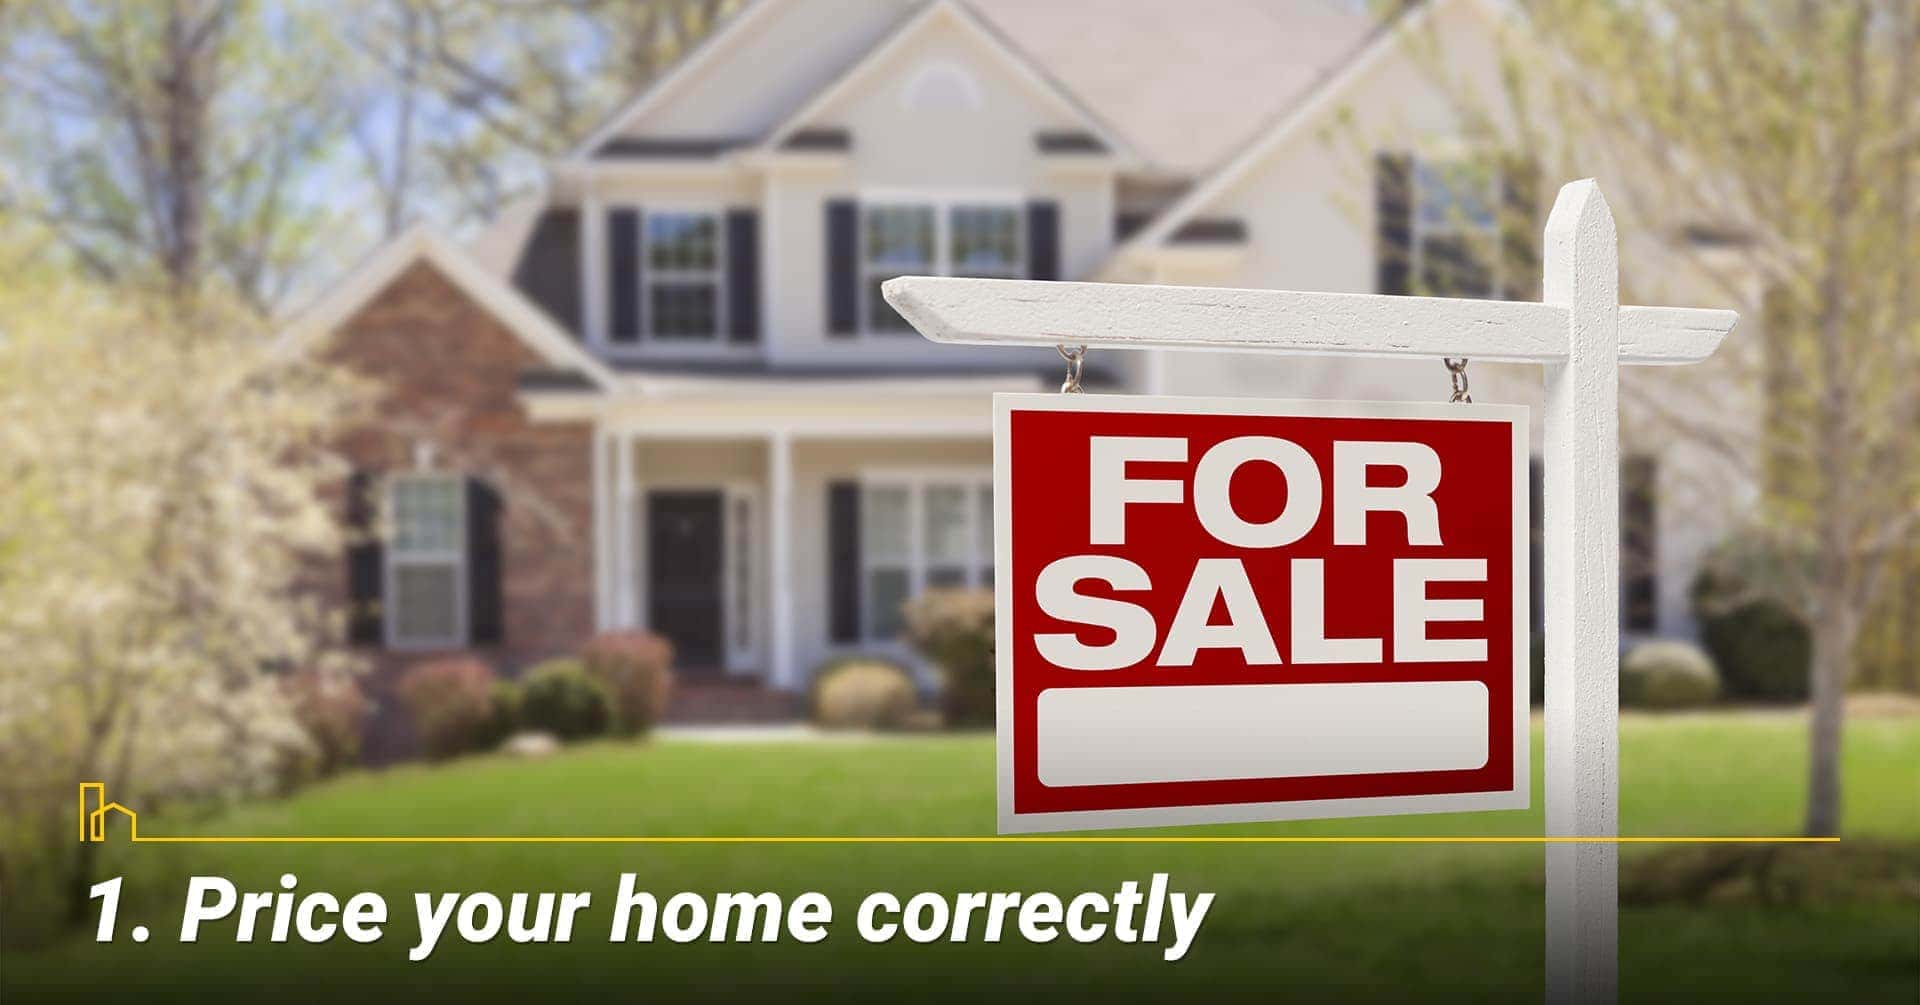 Price your home correctly